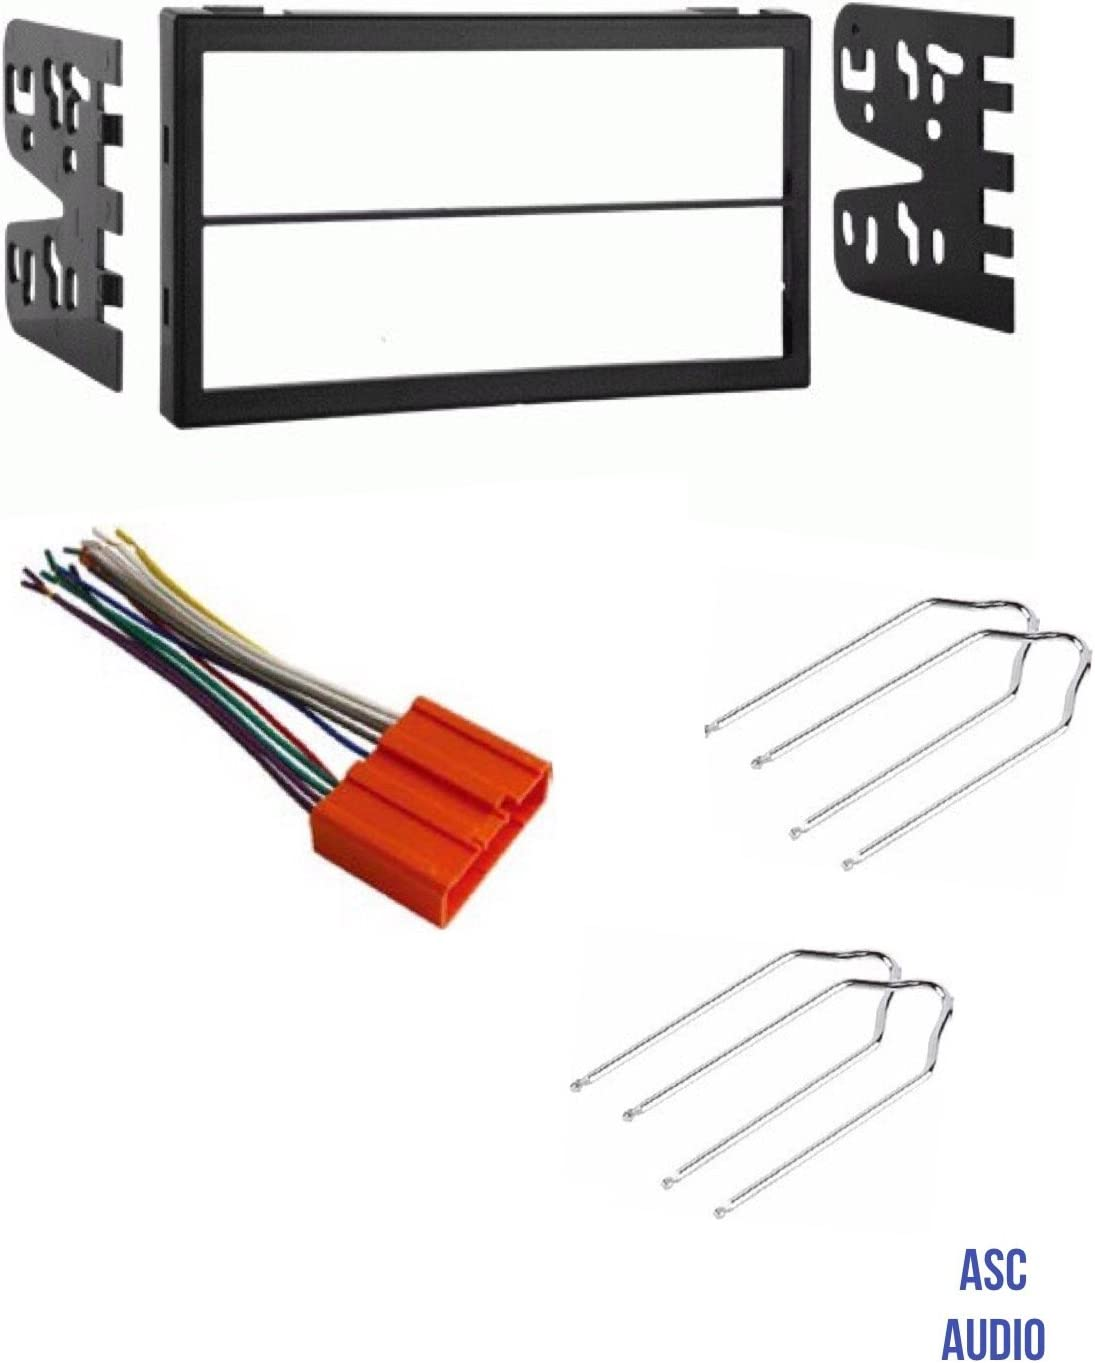 ASC Car Stereo Dash Install Kit, Wire Harness, and Radio Tool for  Installing a Double Din Aftermarket Radio for Some Mazda Vehicles    Important Read ...